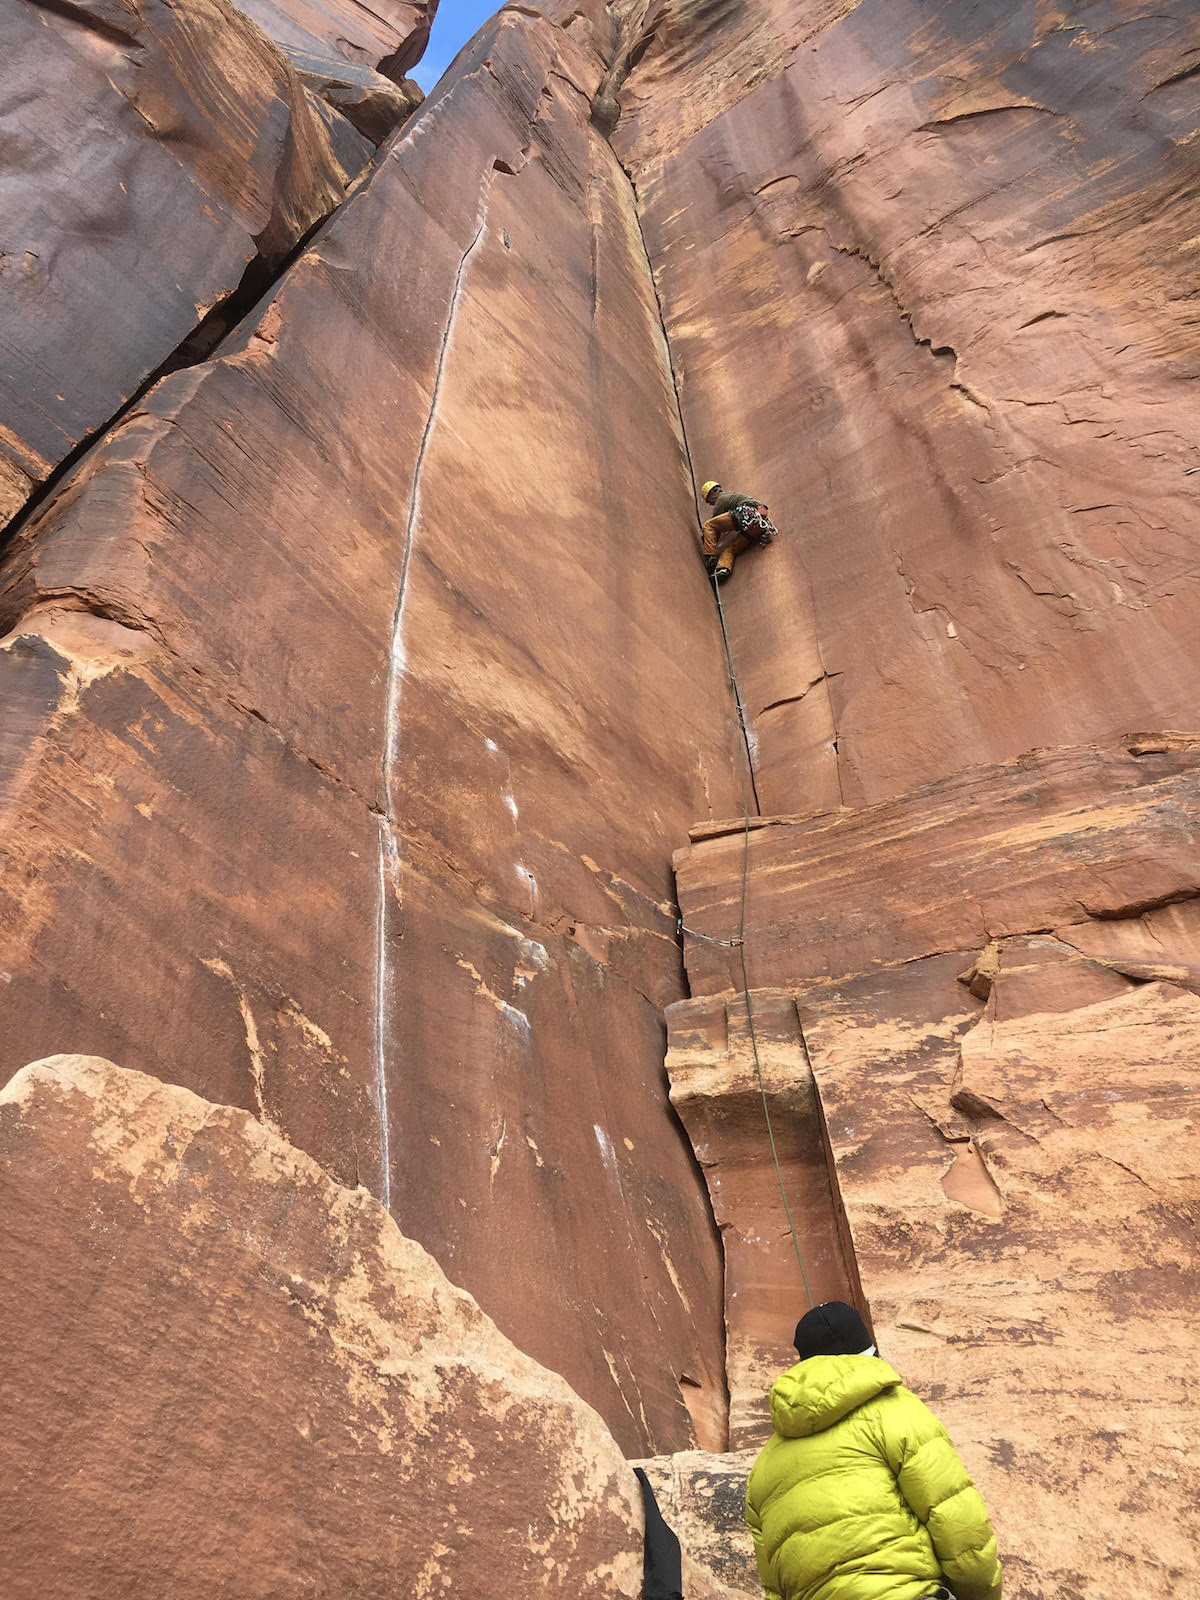 A climber leads Three Strikes You're Out (5.11, 90') on the Battle of the Bulge Buttress in Indian Creek, Utah. The area is part of Bears Ears National Monument where US Interior Secretary Ryan Zinke is conducting a visit as part of his review of all national monuments designated in the last 21 years—as ordered by President Donald Trump in April. Conservation groups fear the unprecedented review could result in these monuments being rescinded or reduced. [Photo] Derek Franz